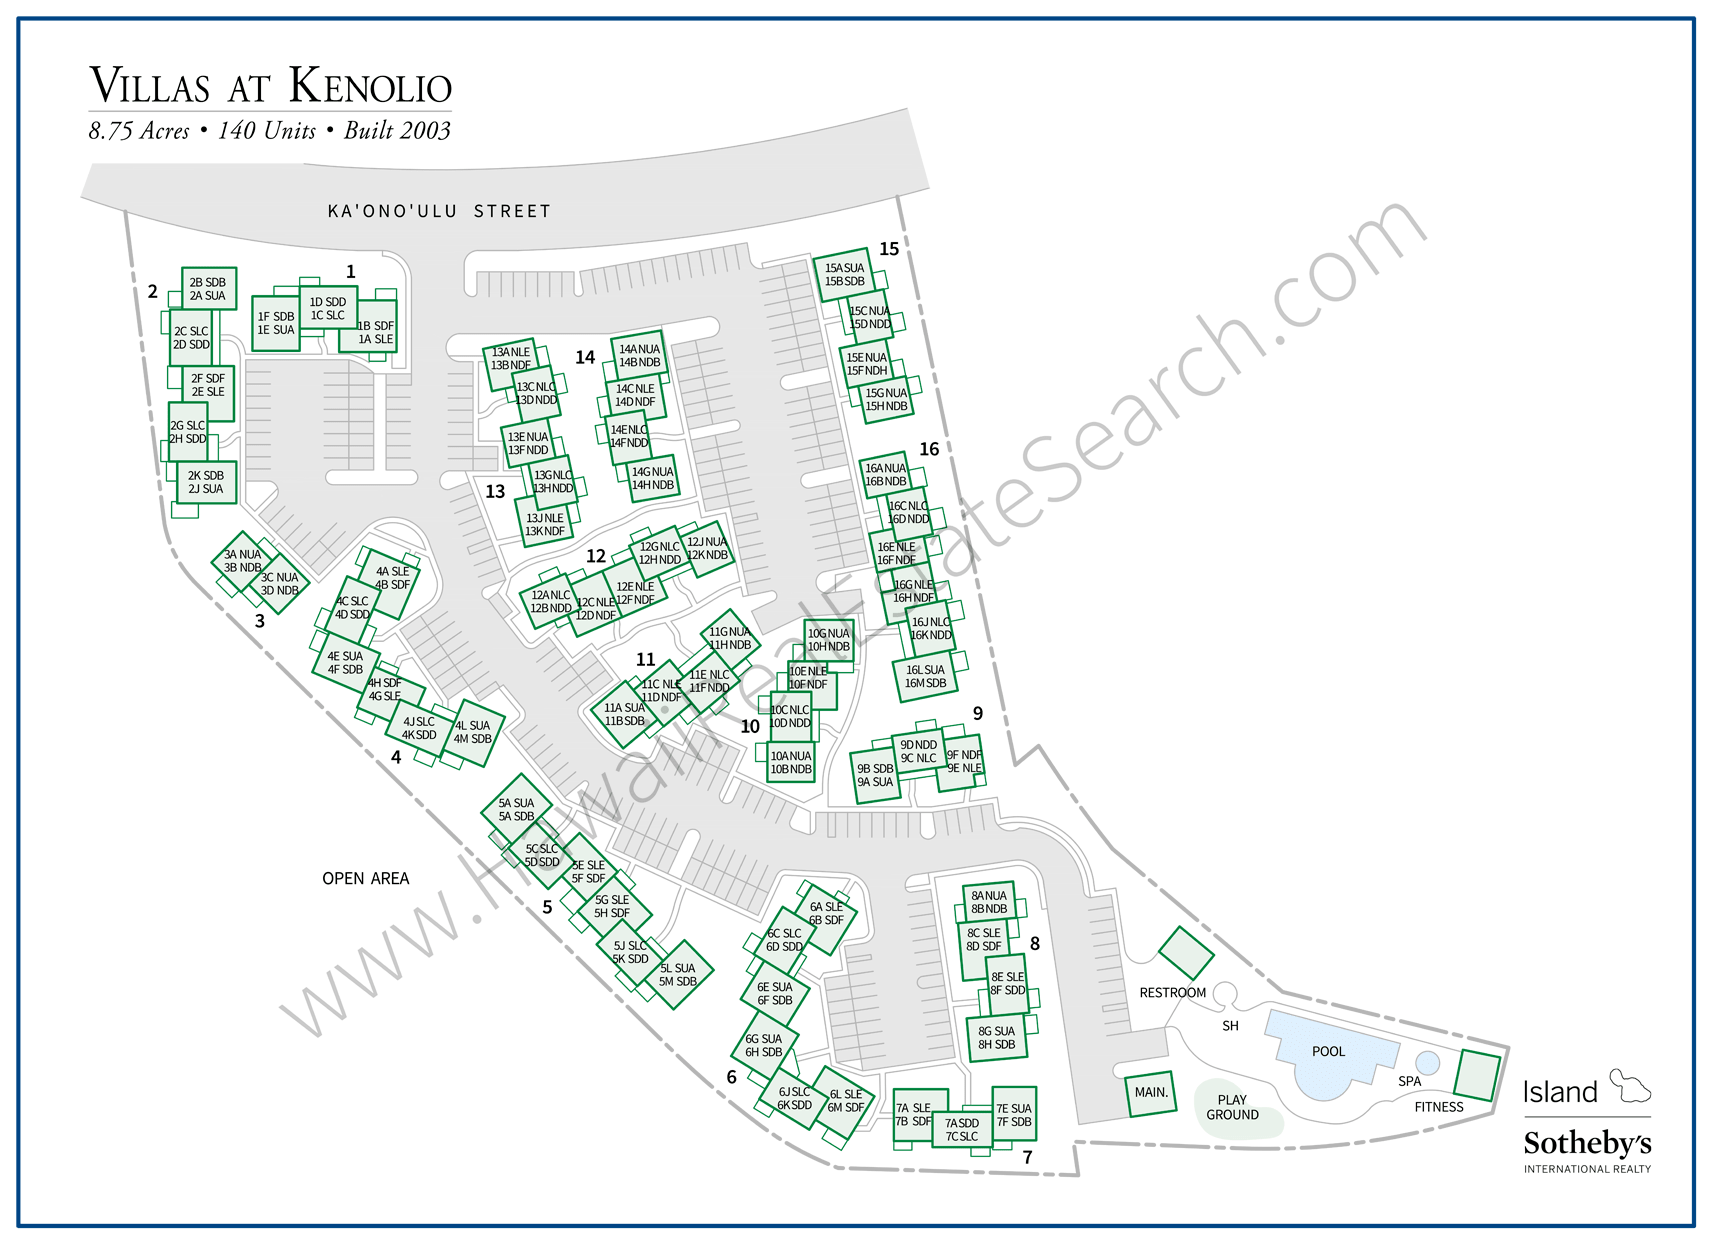 Map of Villas at Kenolio